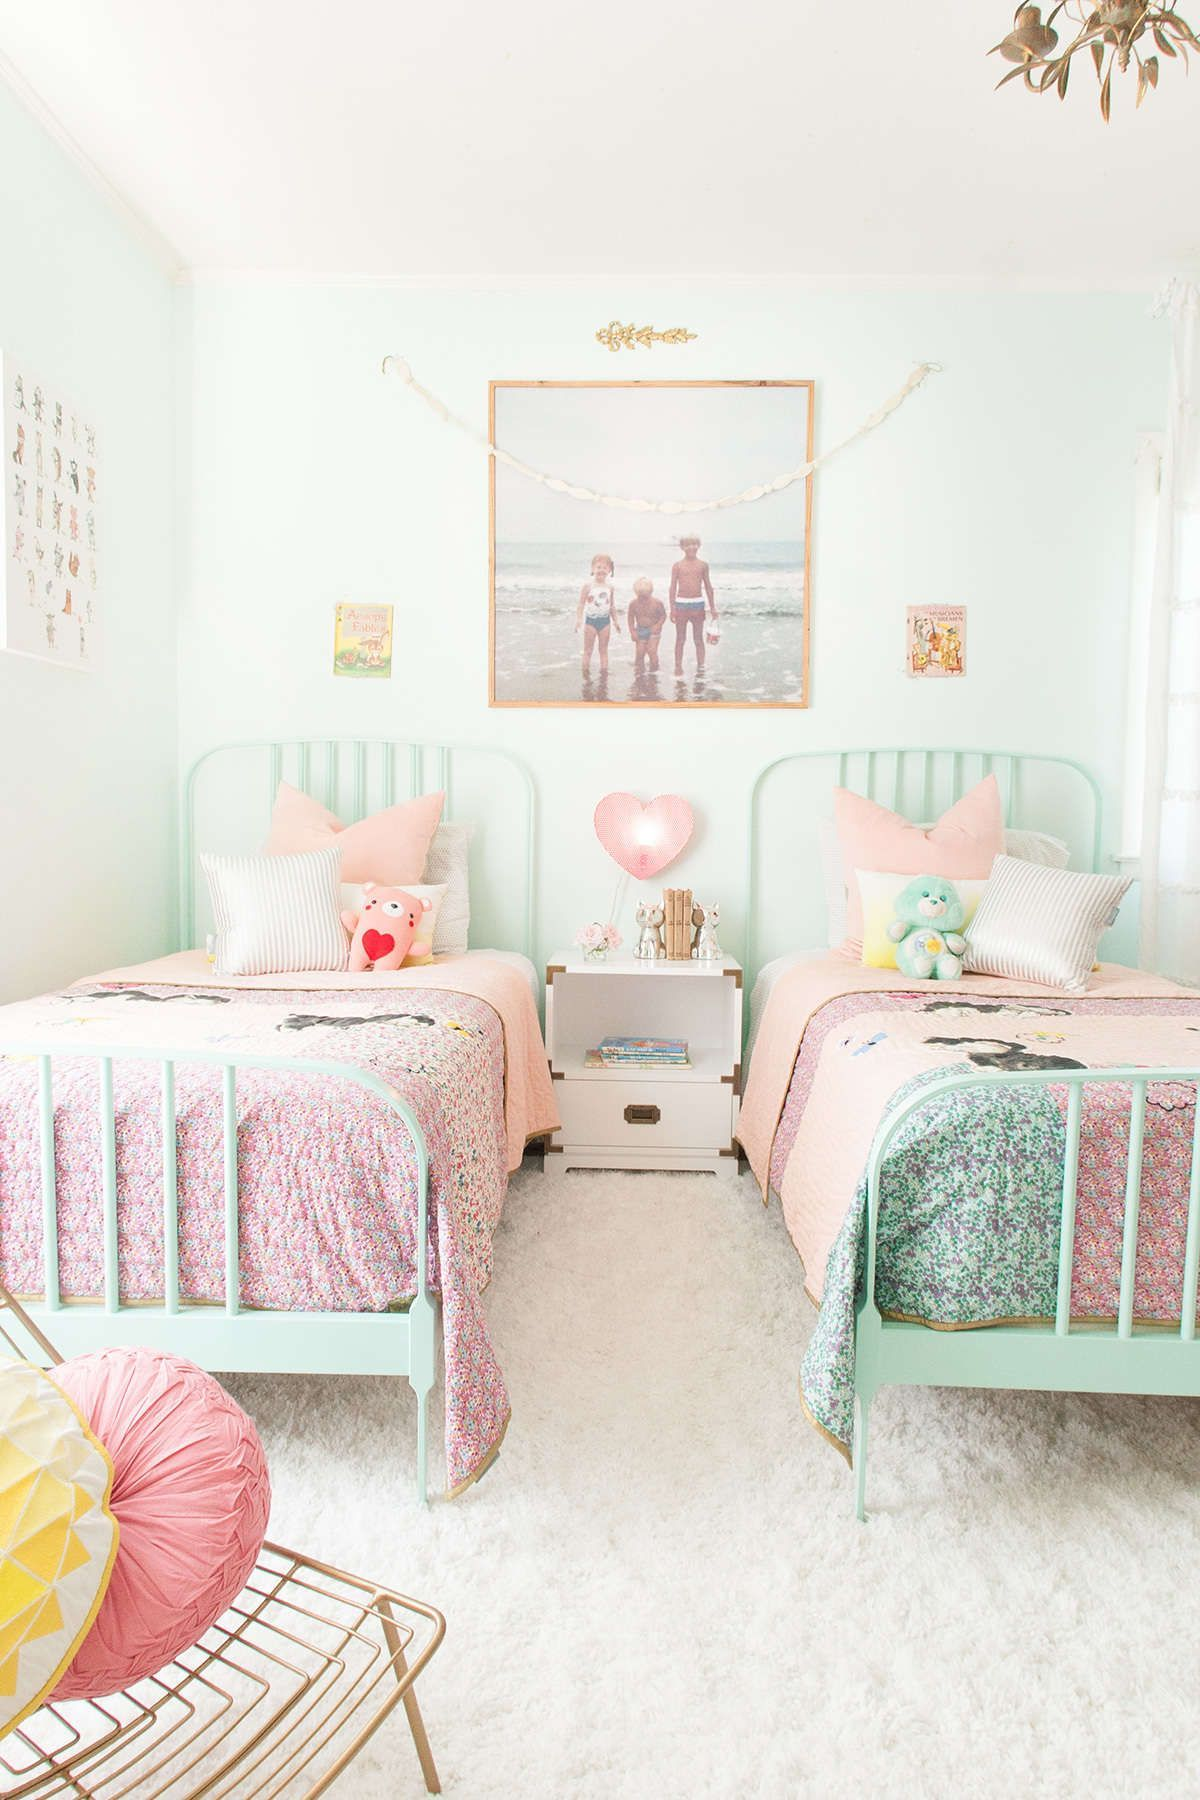 bedroom sets bedroom furniture bedroom ideas bedroom